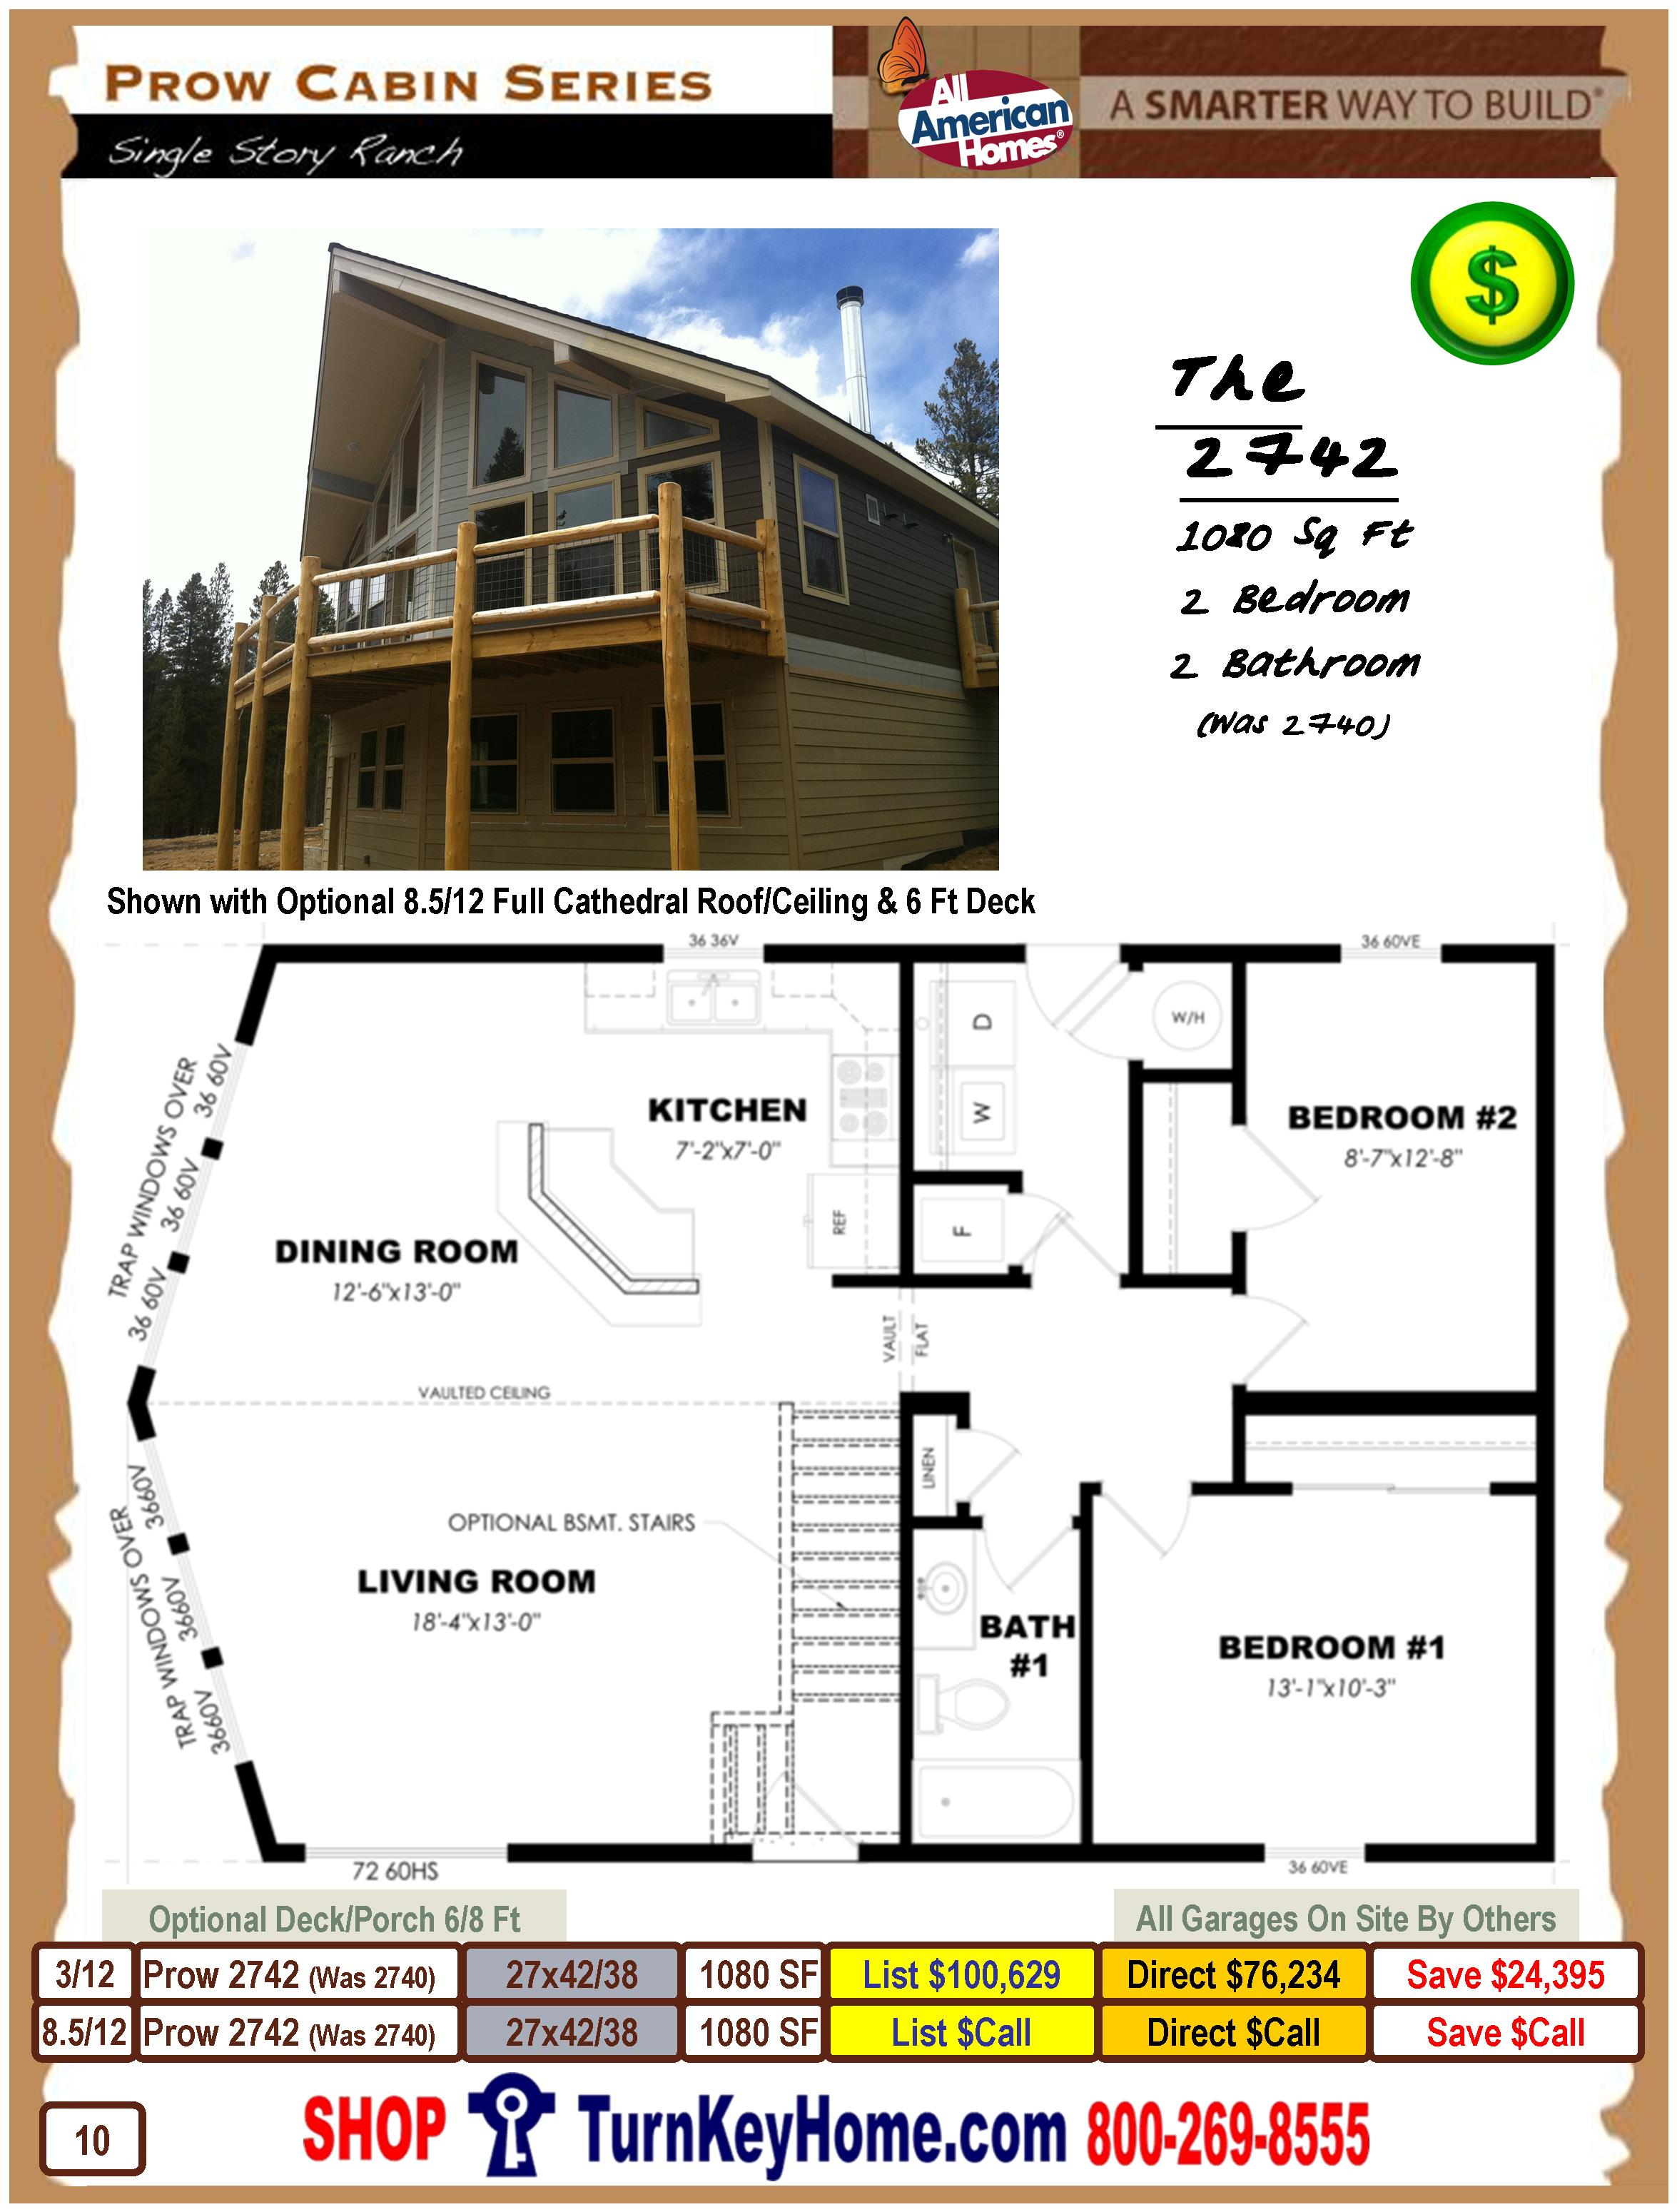 prow cabin series from all american homes modular home plan cabin book